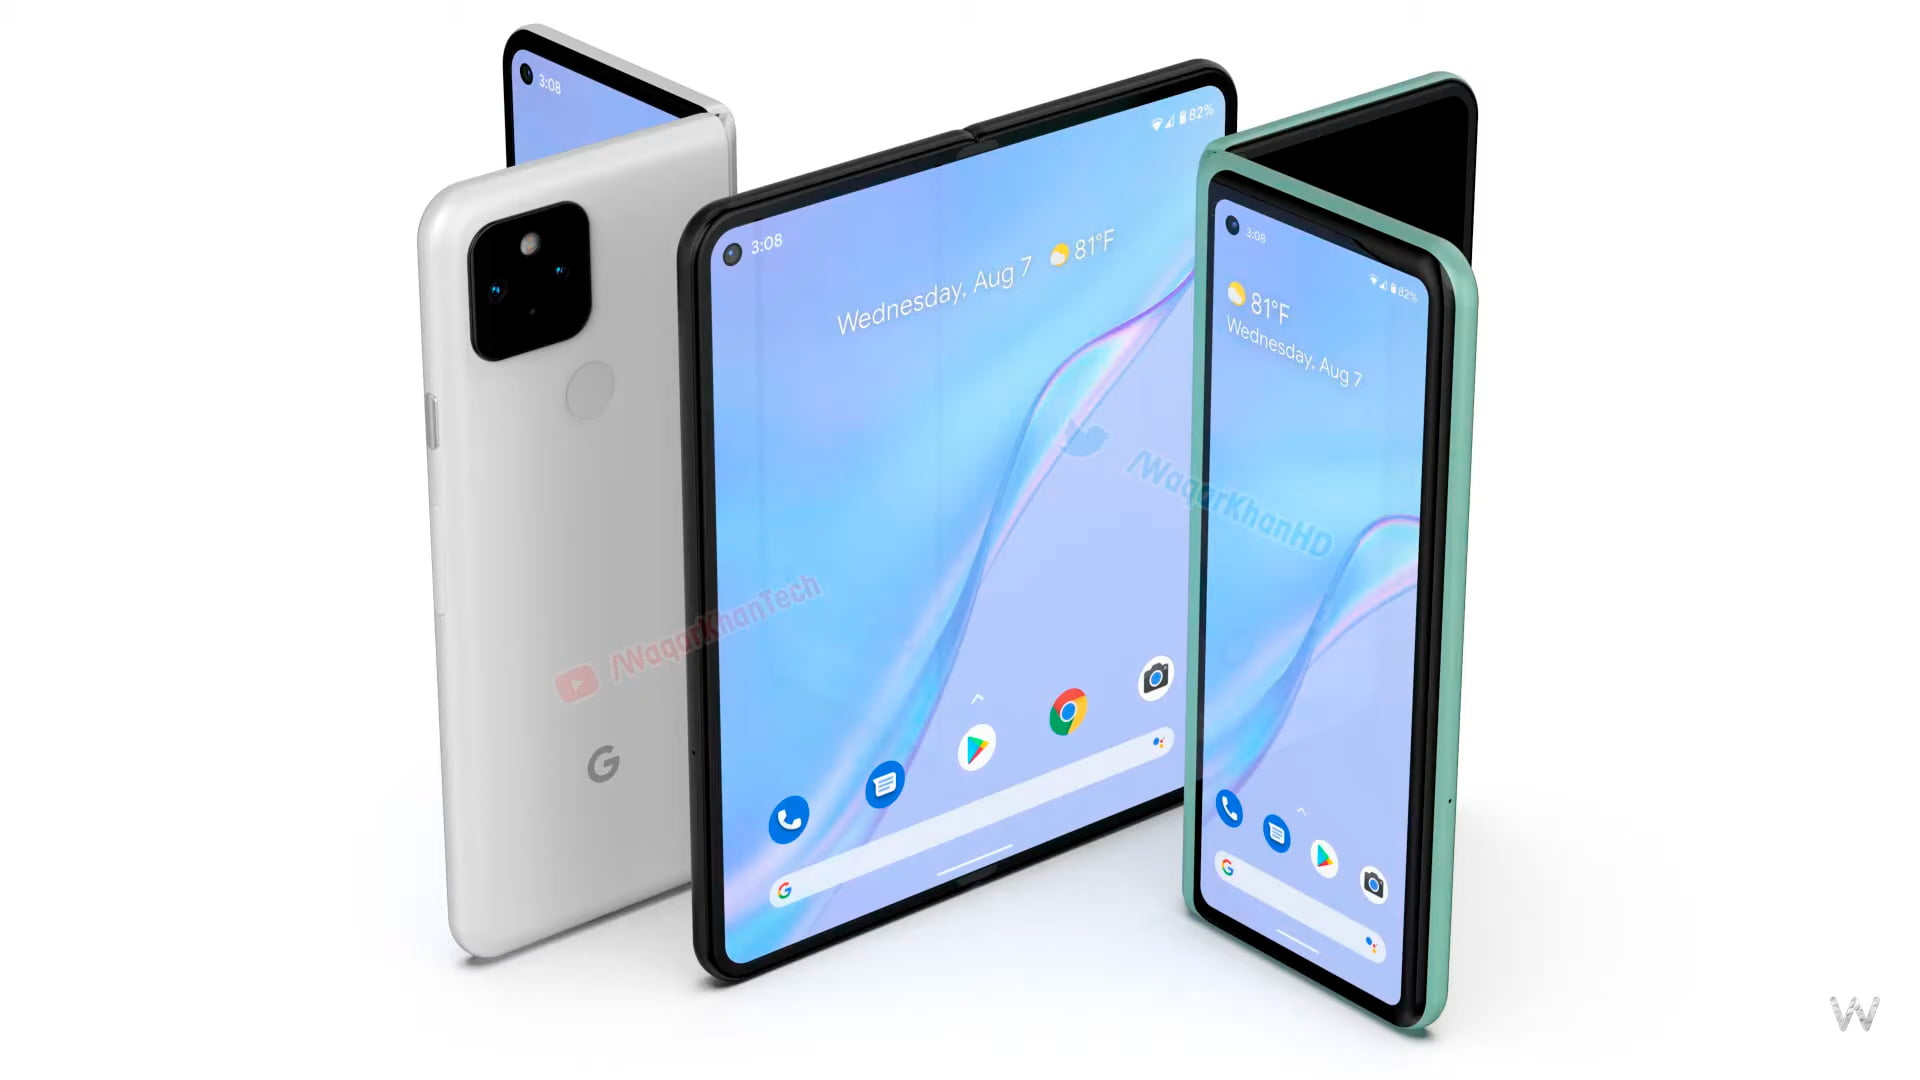 This video shows what a Google Pixel foldable could look like